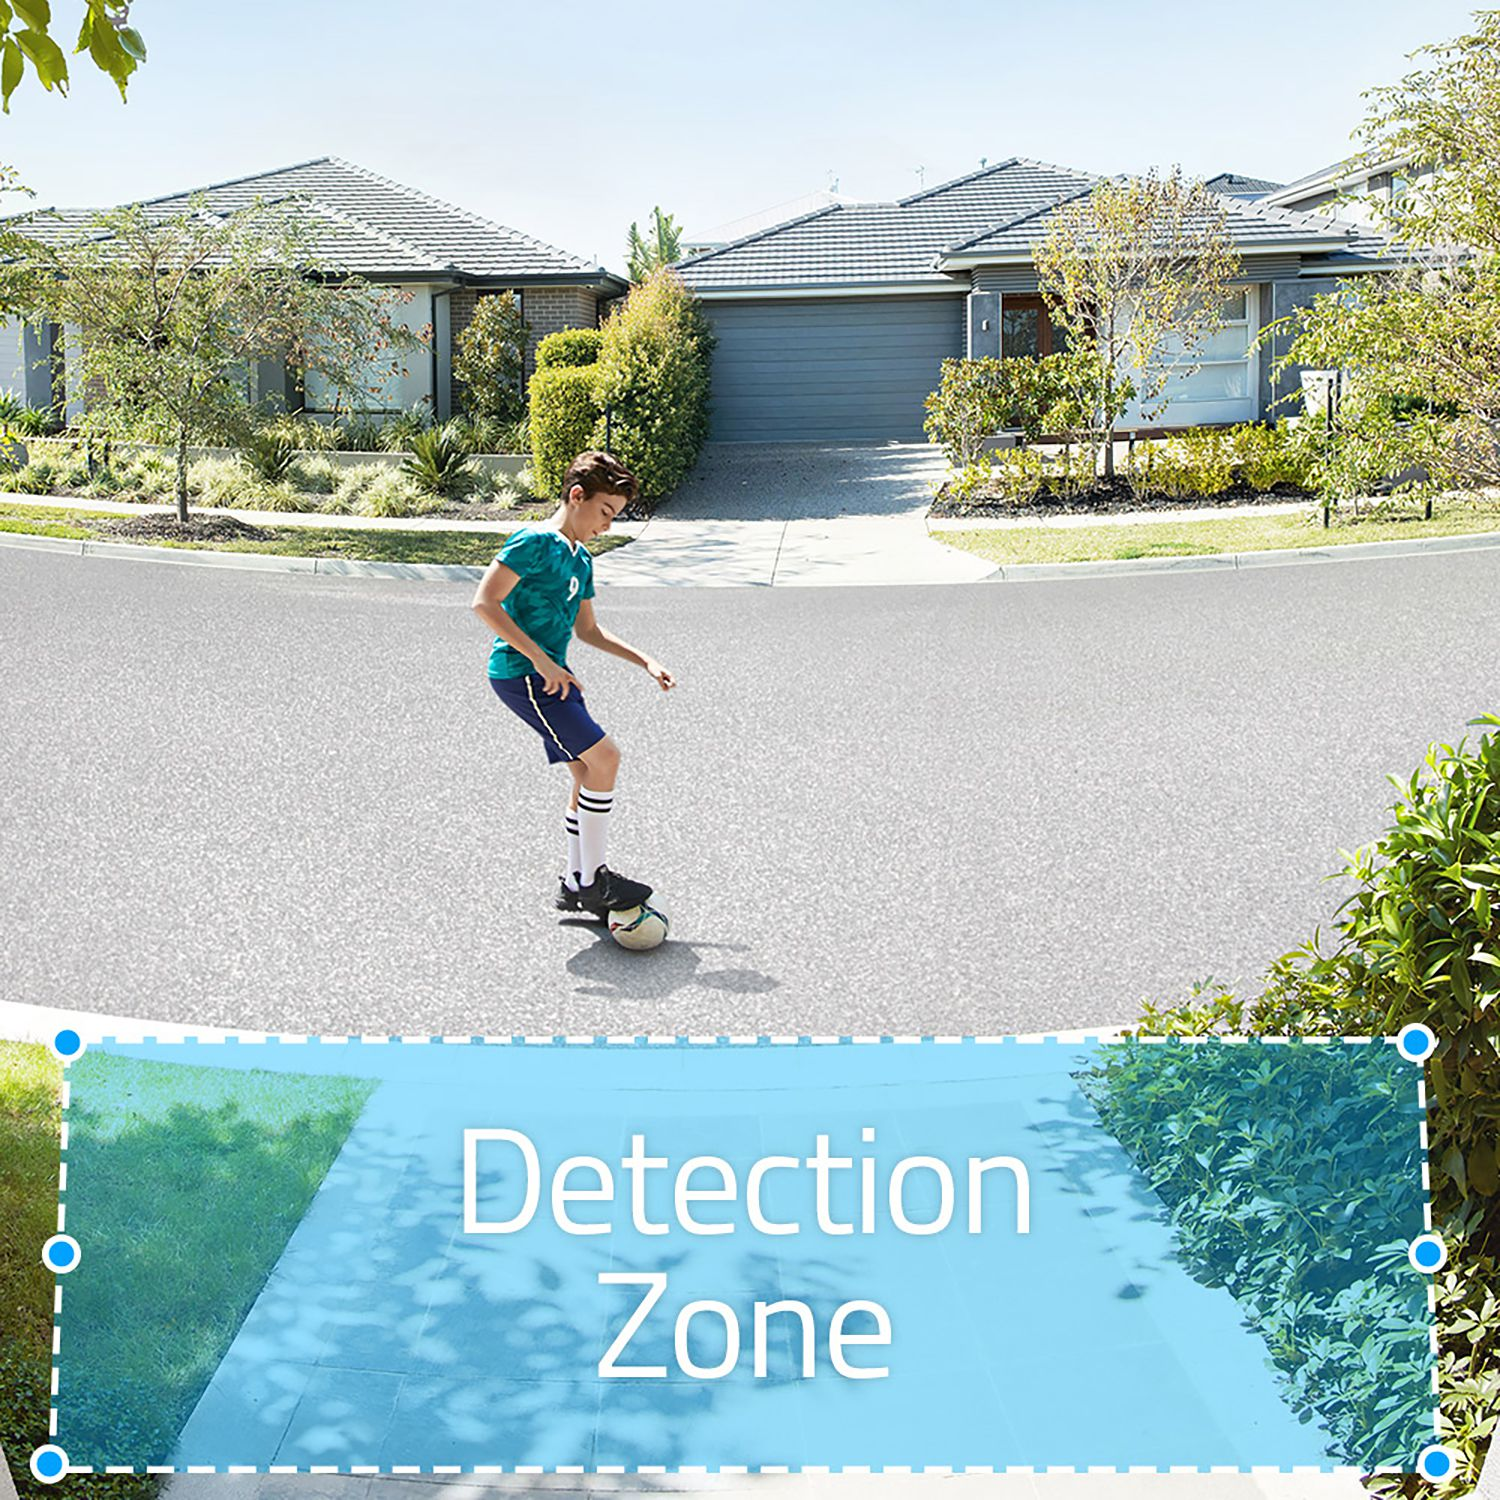 Users can set motion detection zones to avoid unwanted notifications.